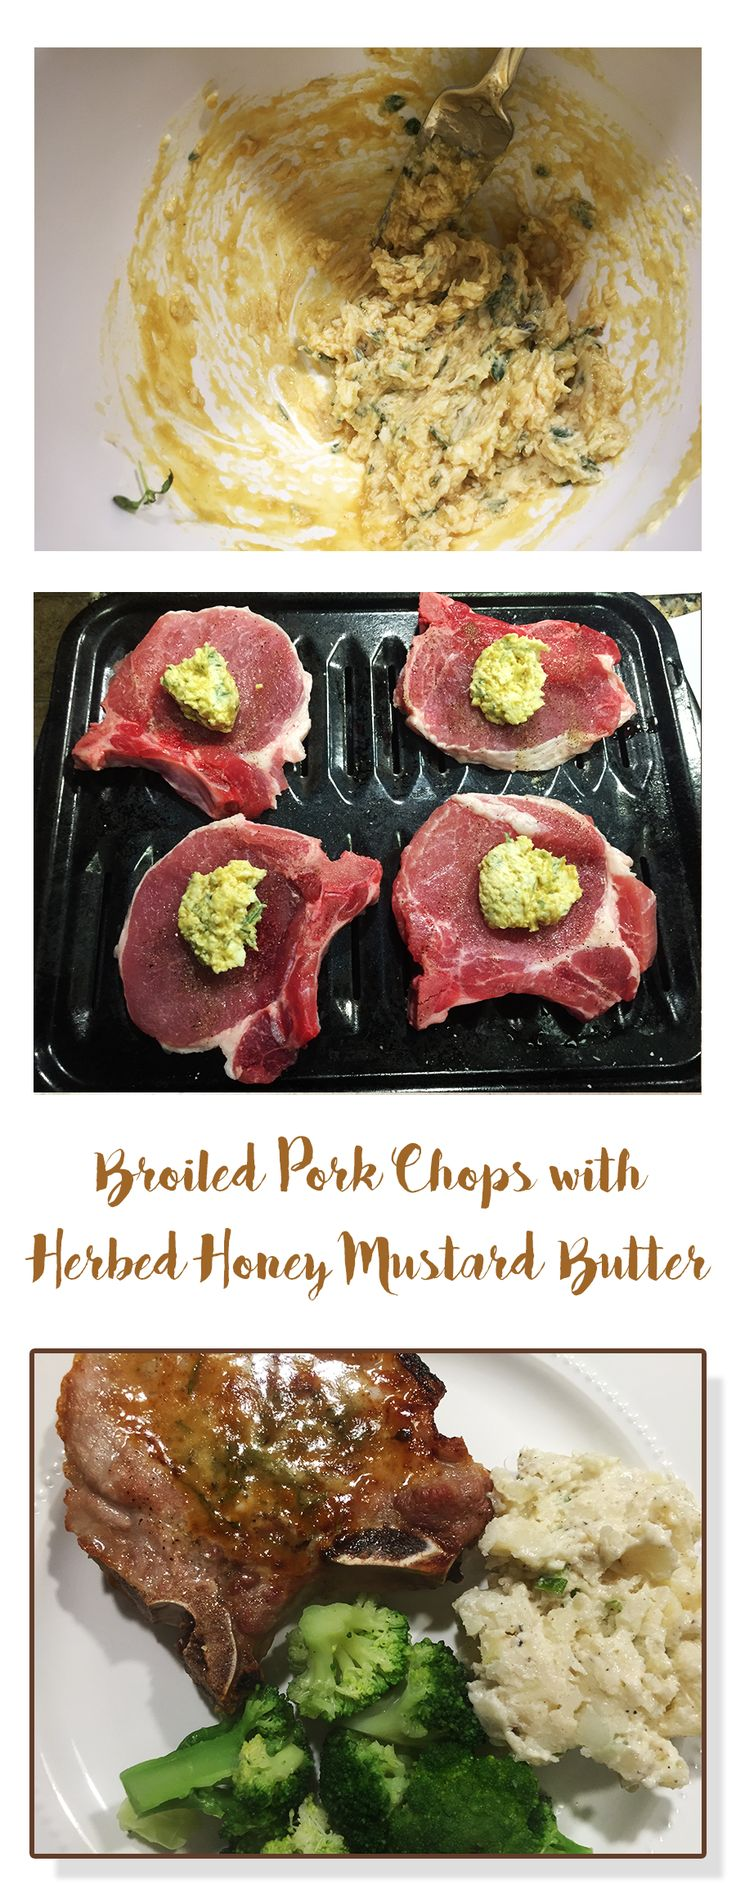 Quick, Easy & Delicious. Broiled Pork Chops with Herbed Honey Mustard Butter. Just 4 Carbs!